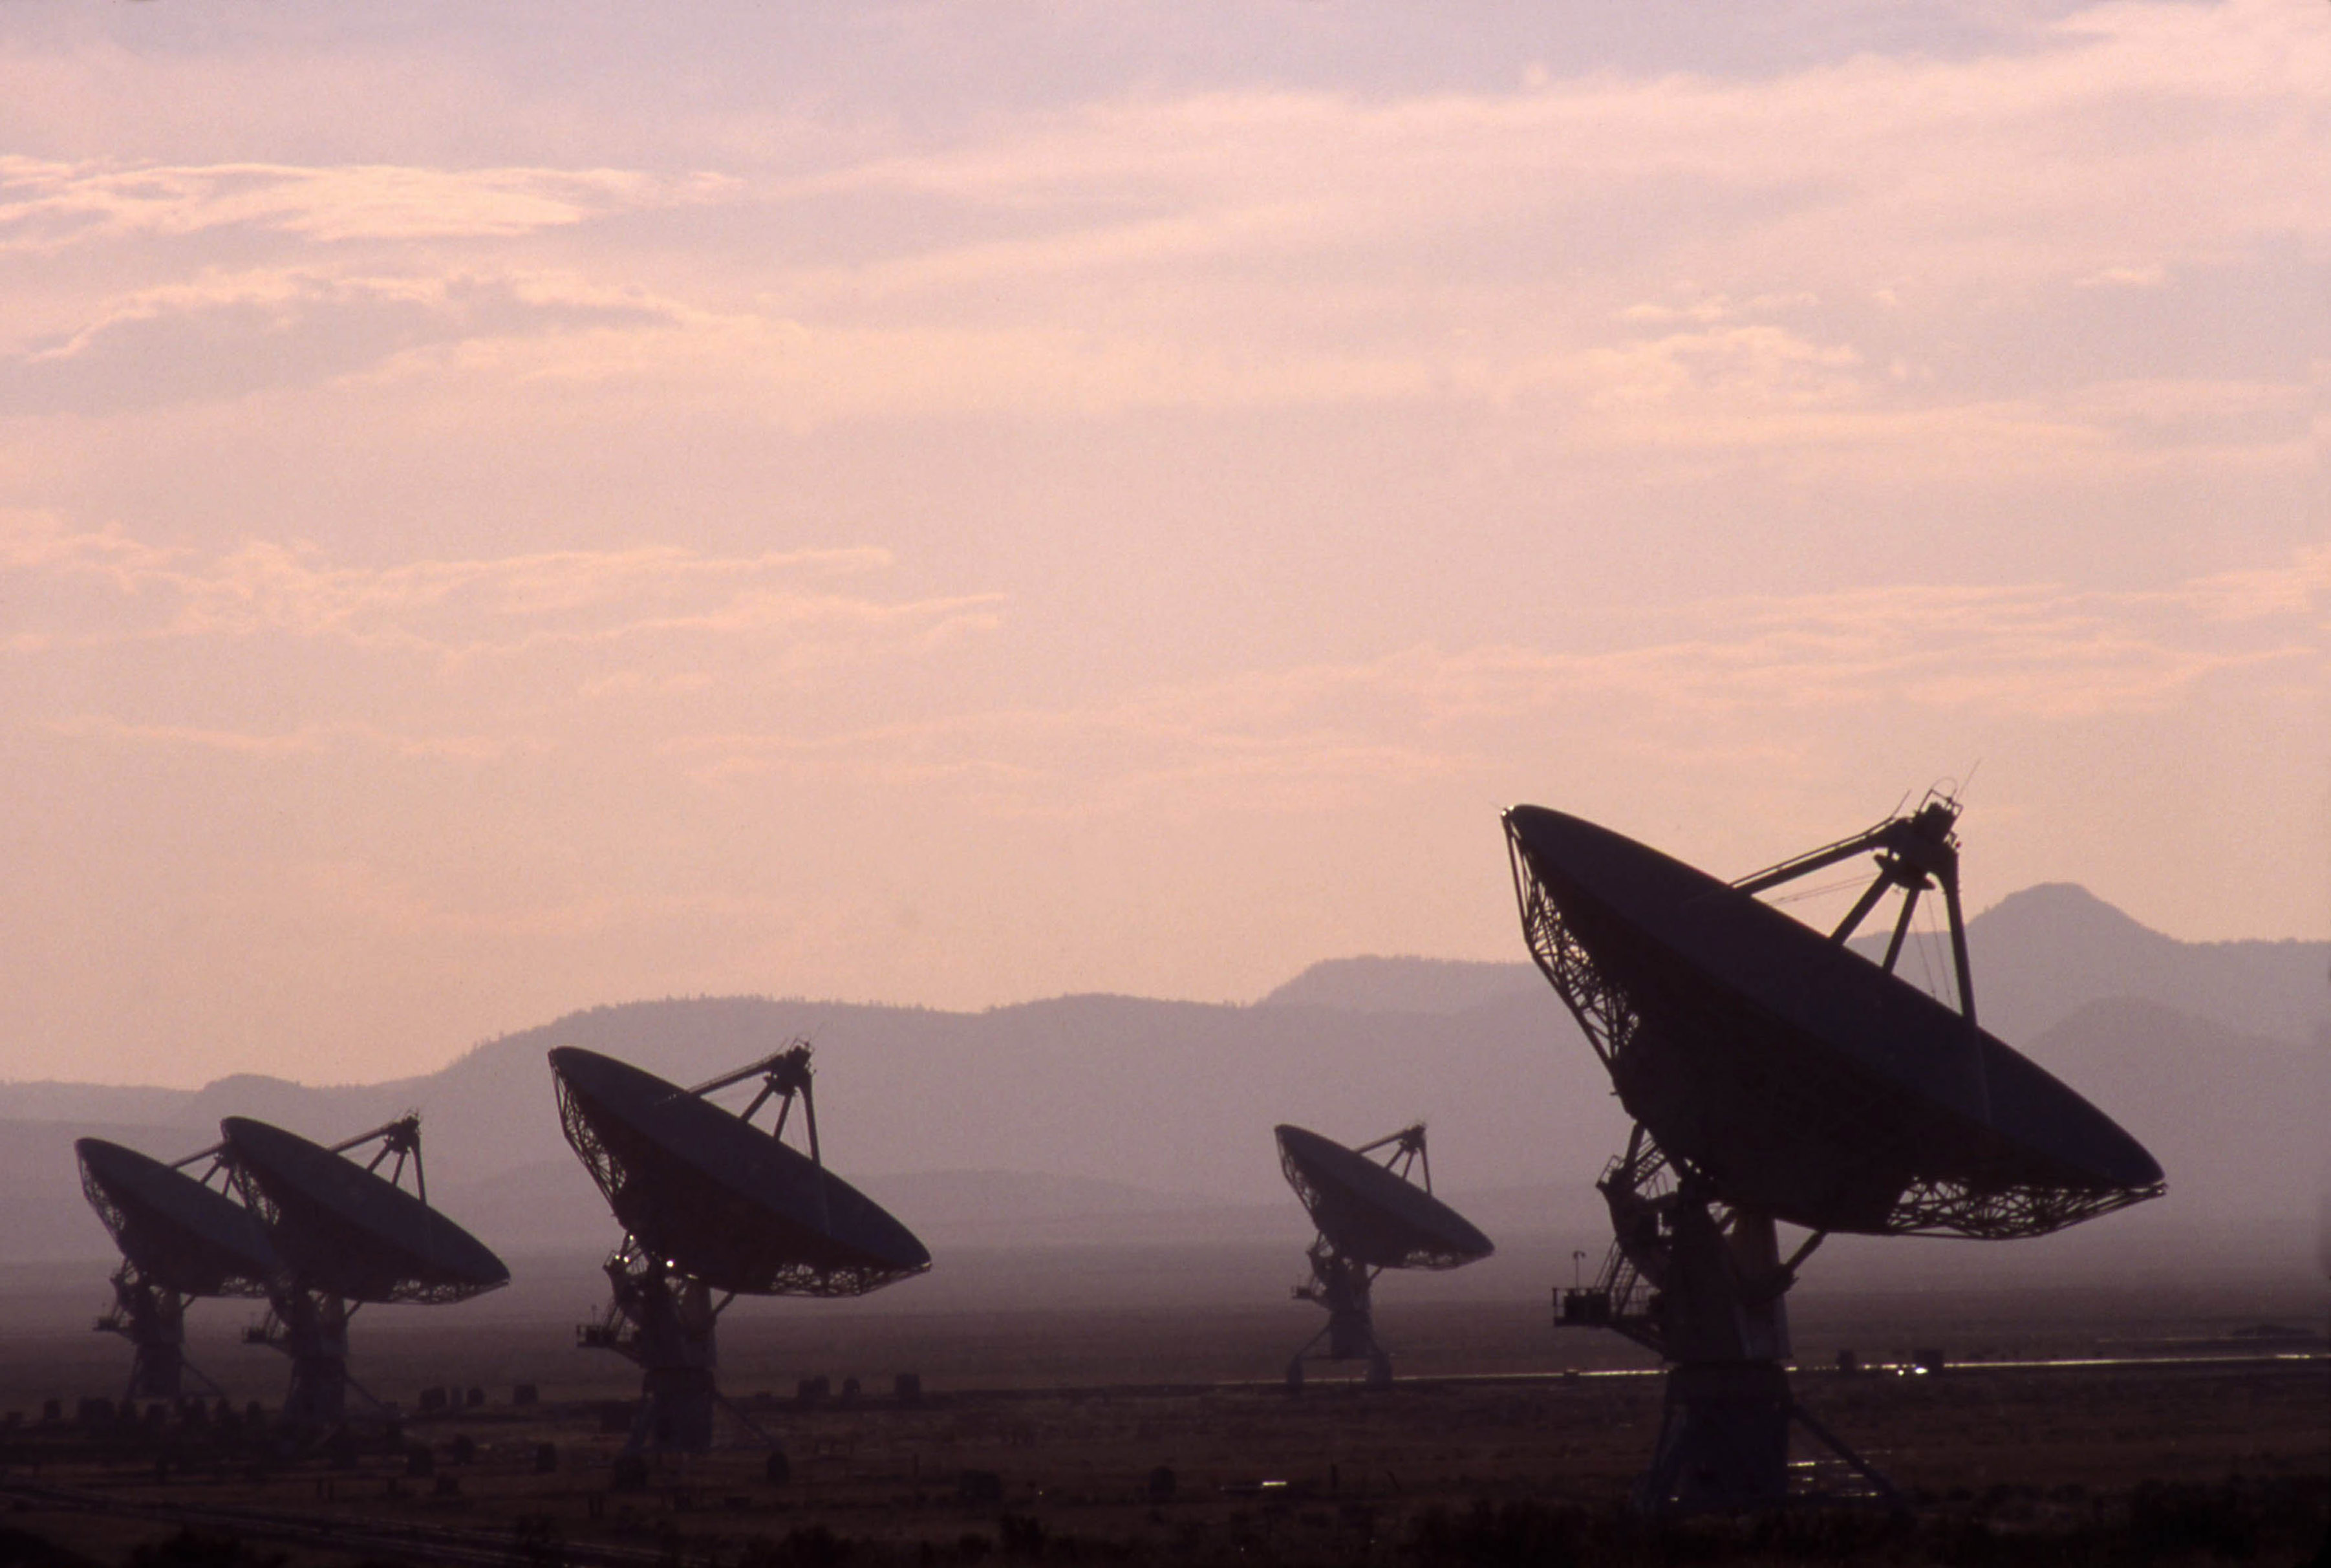 Pentagon Likely Thinks UFOs 'Not Human,' Astrophysicist Says Ahead of Report - Newsweek